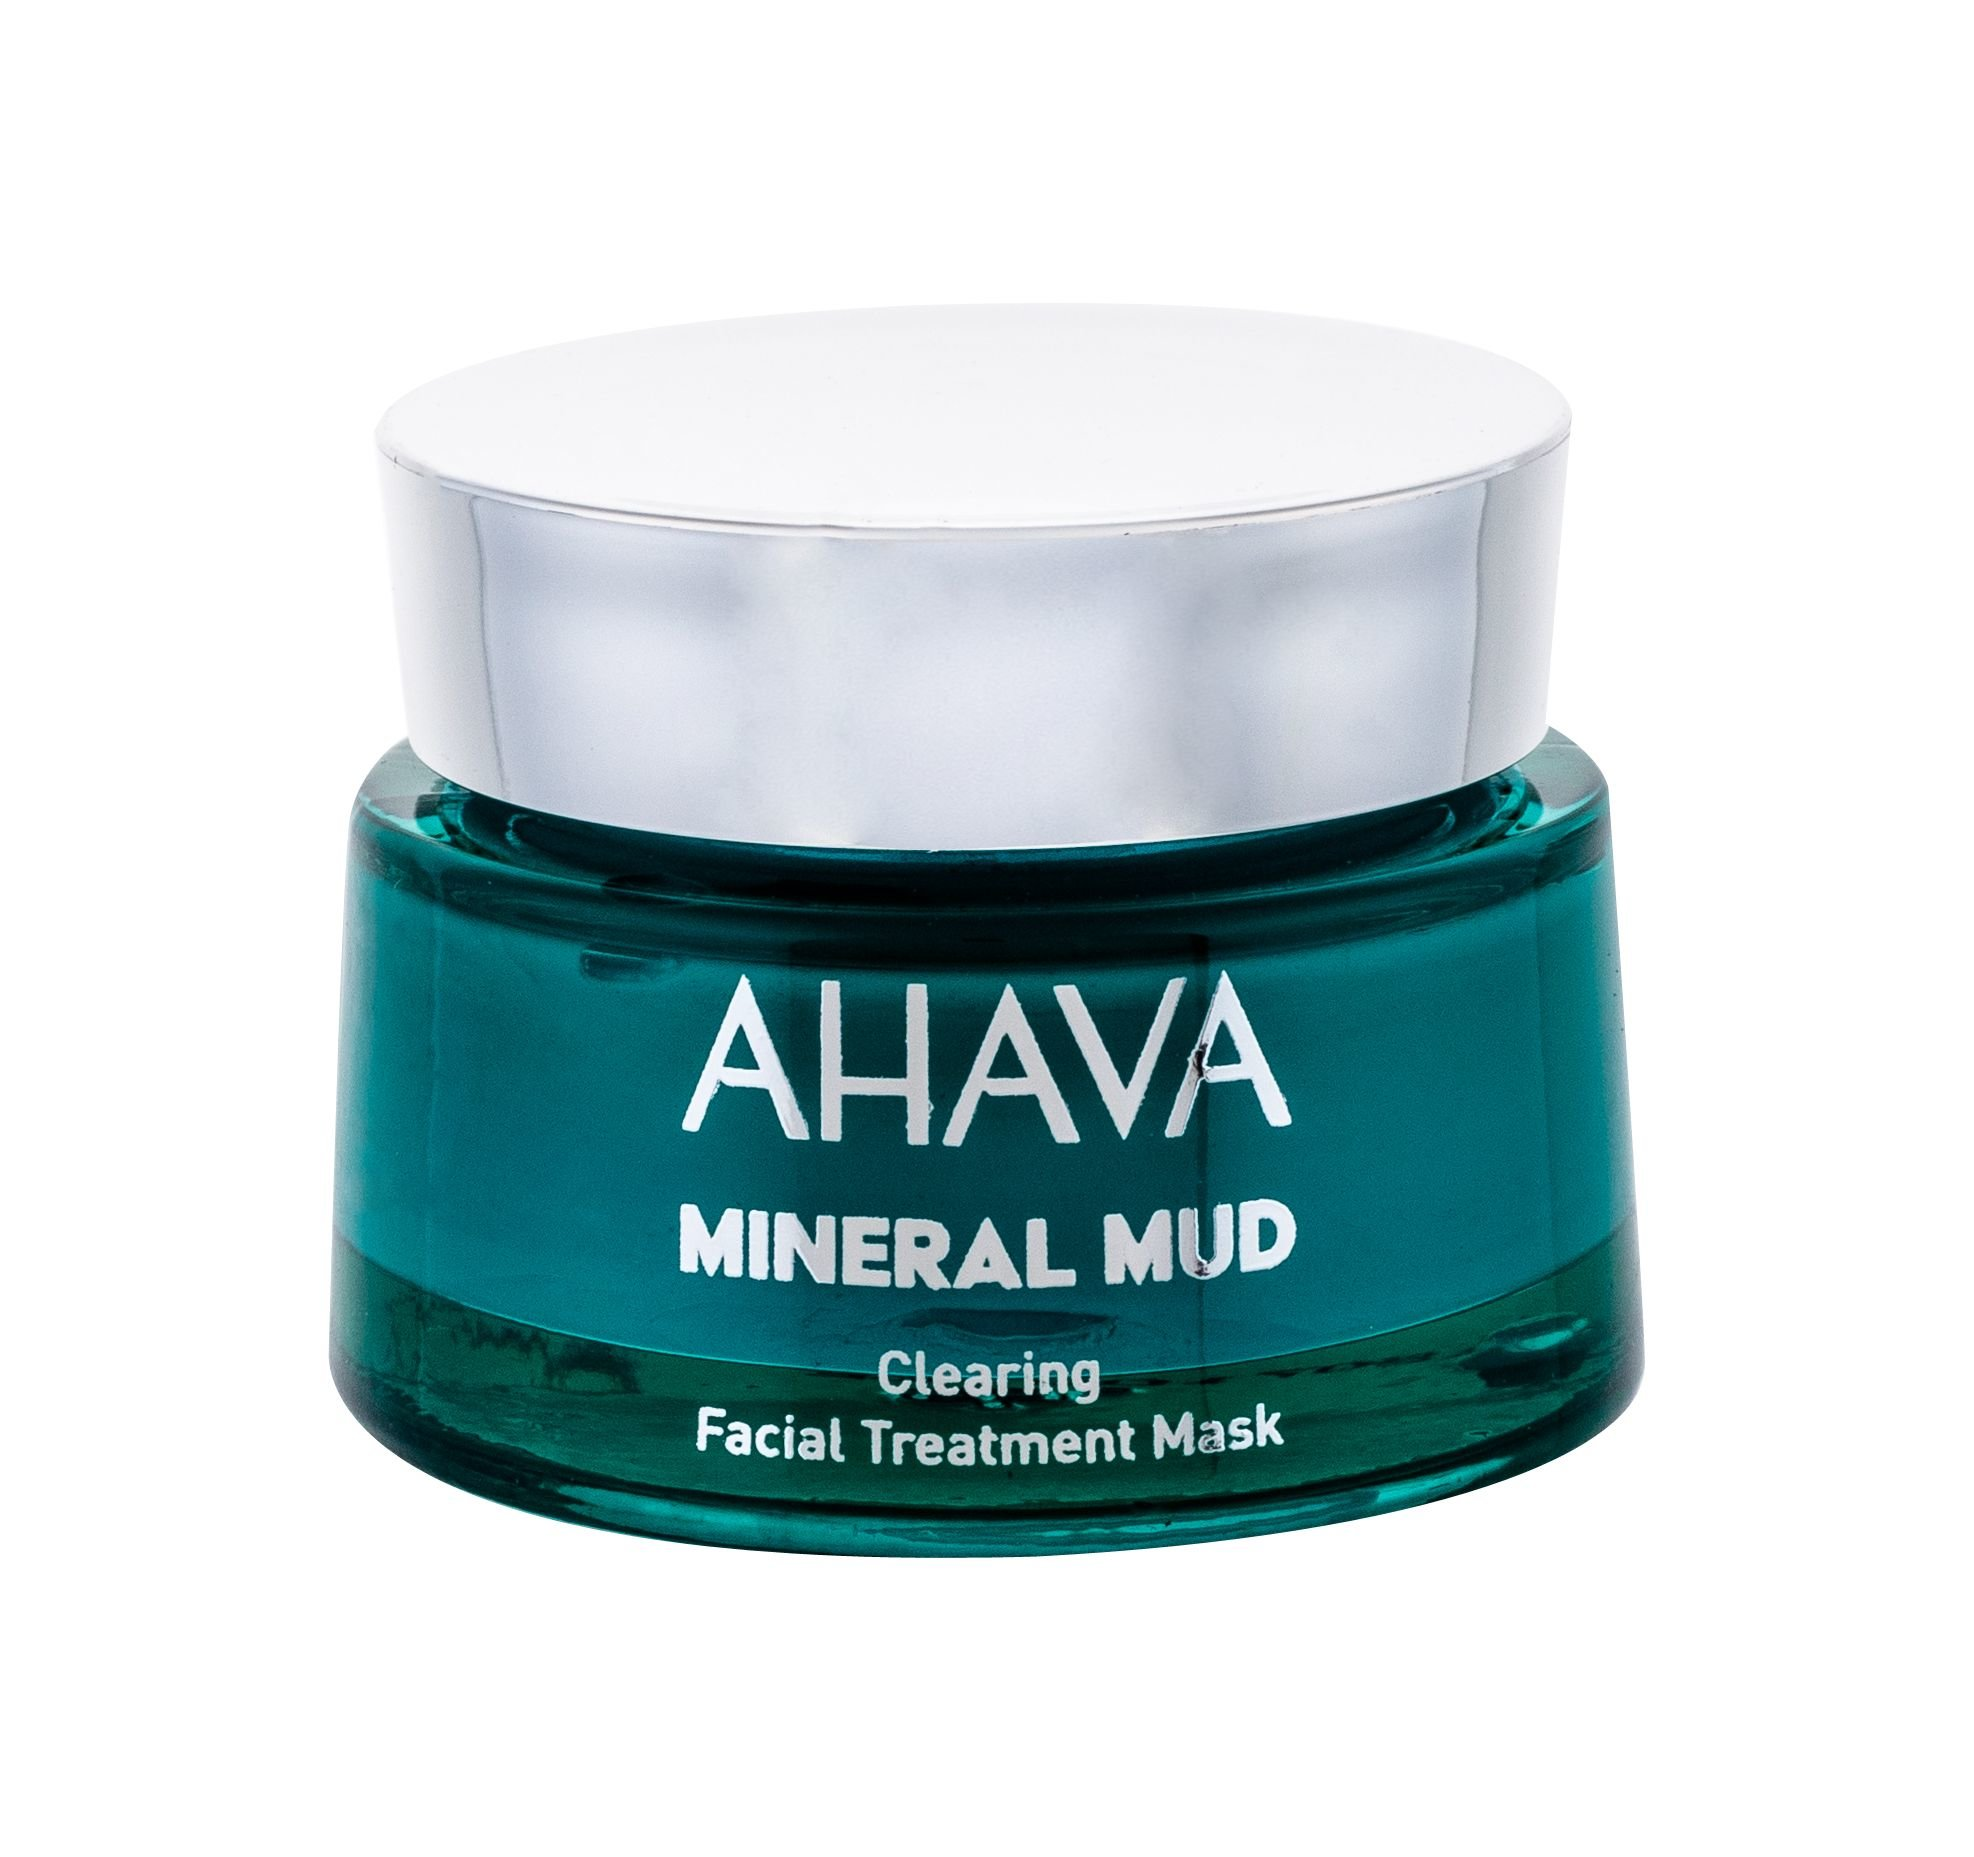 AHAVA Mineral Mud Face Mask 50ml  Clearing